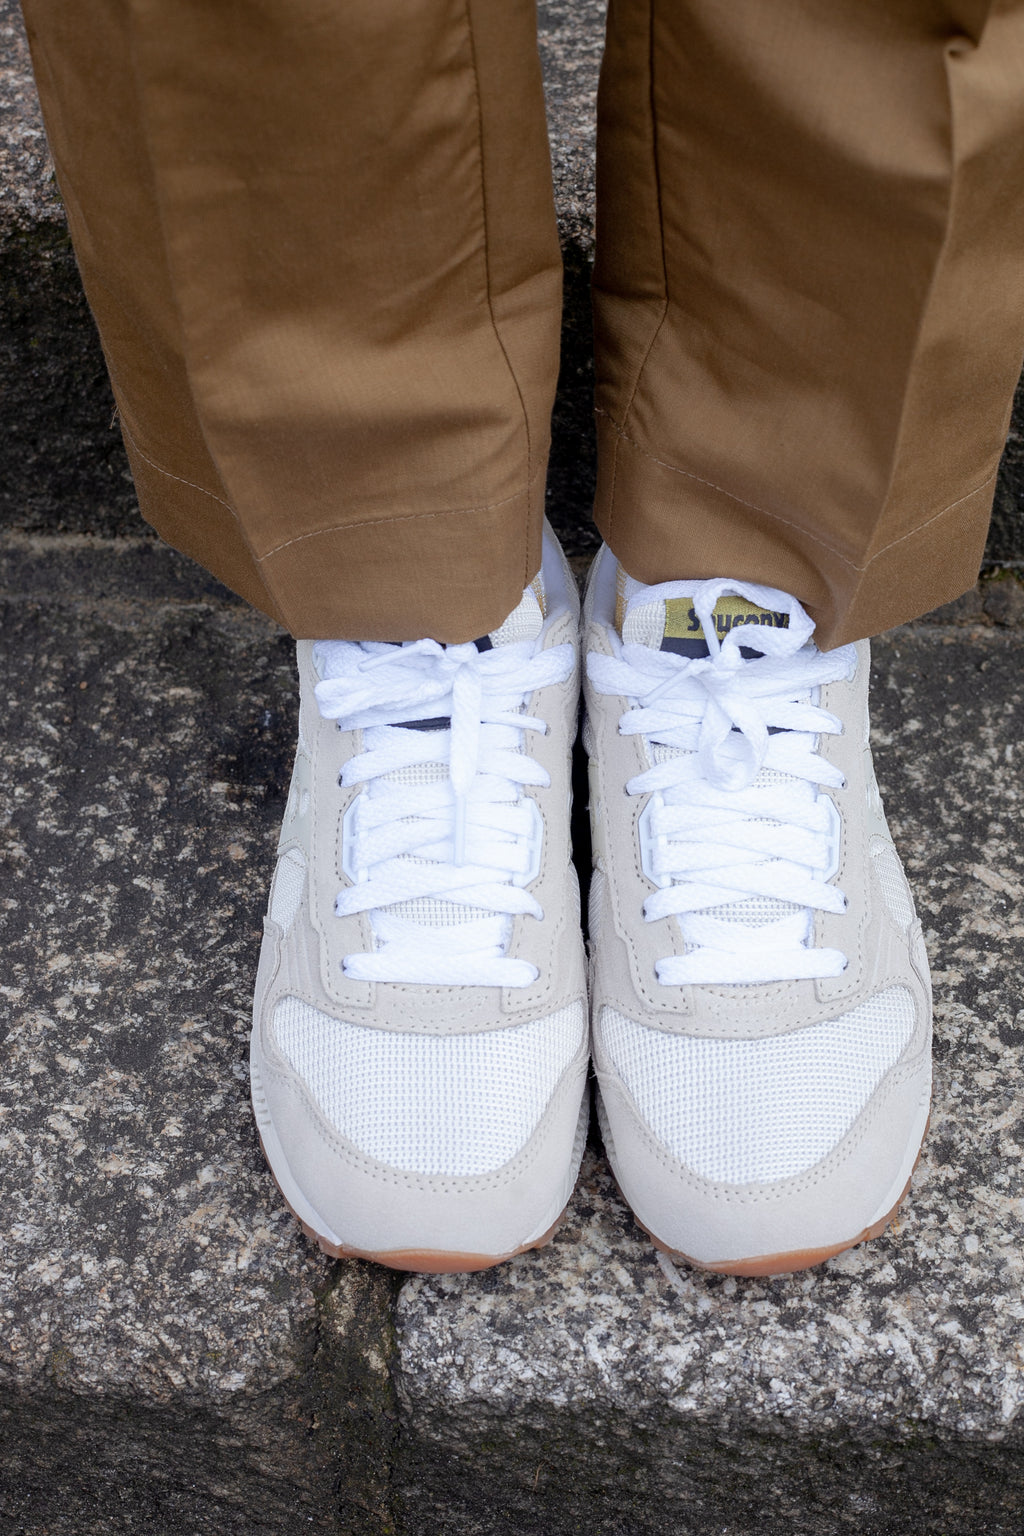 Saucony Unisex Shadow 5000 Tan & White Trainers - The Mercantile London